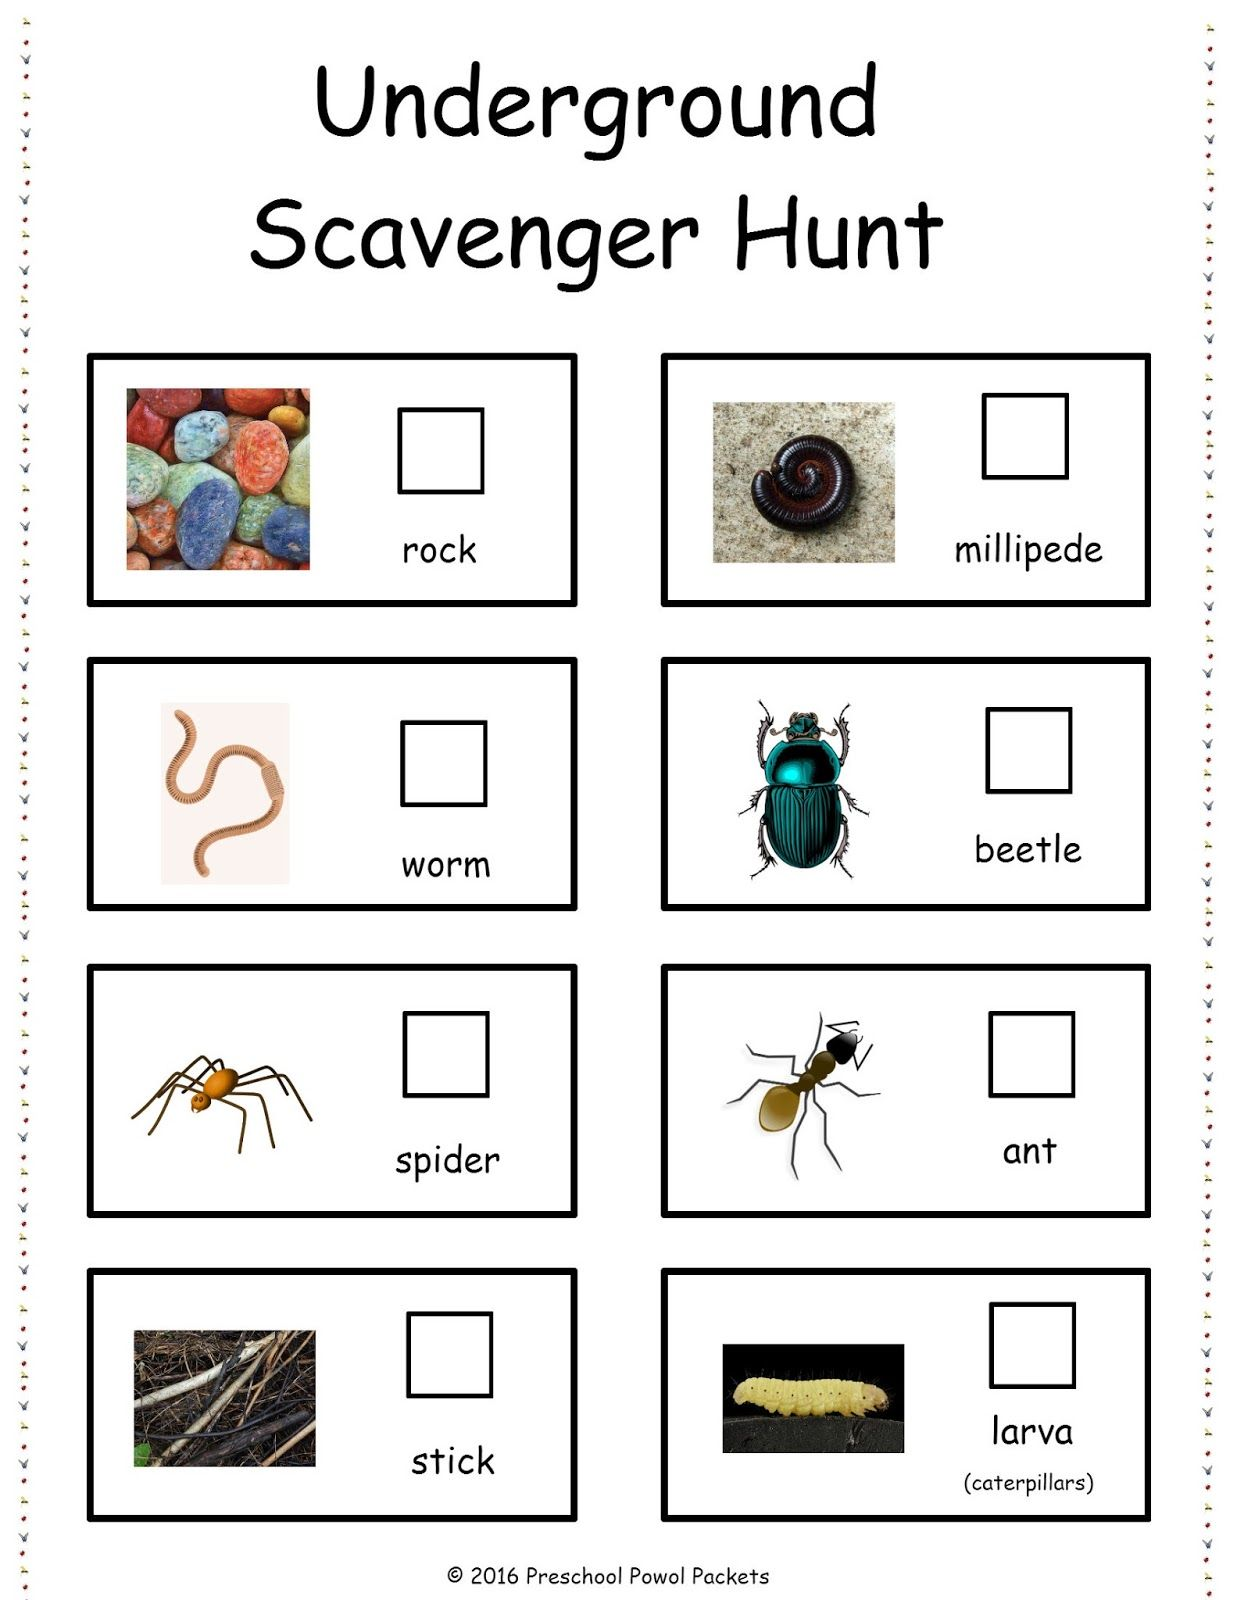 Includes worksheets and activities, life cycles, playdough mats,